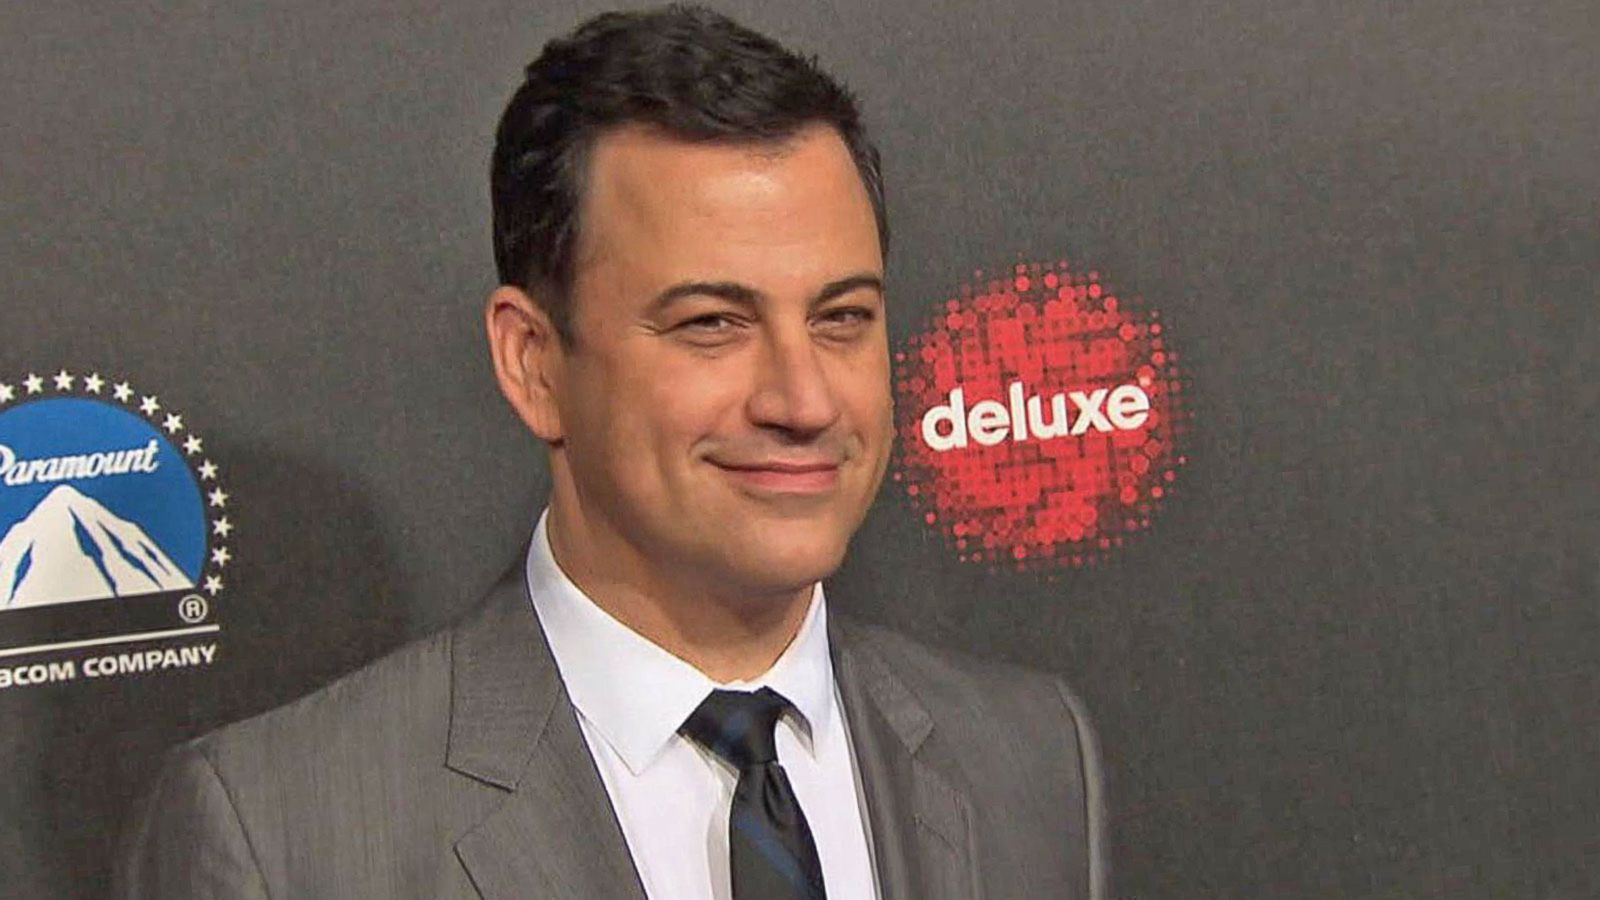 VIDEO: Jimmy Kimmel to Host 2017 Oscars